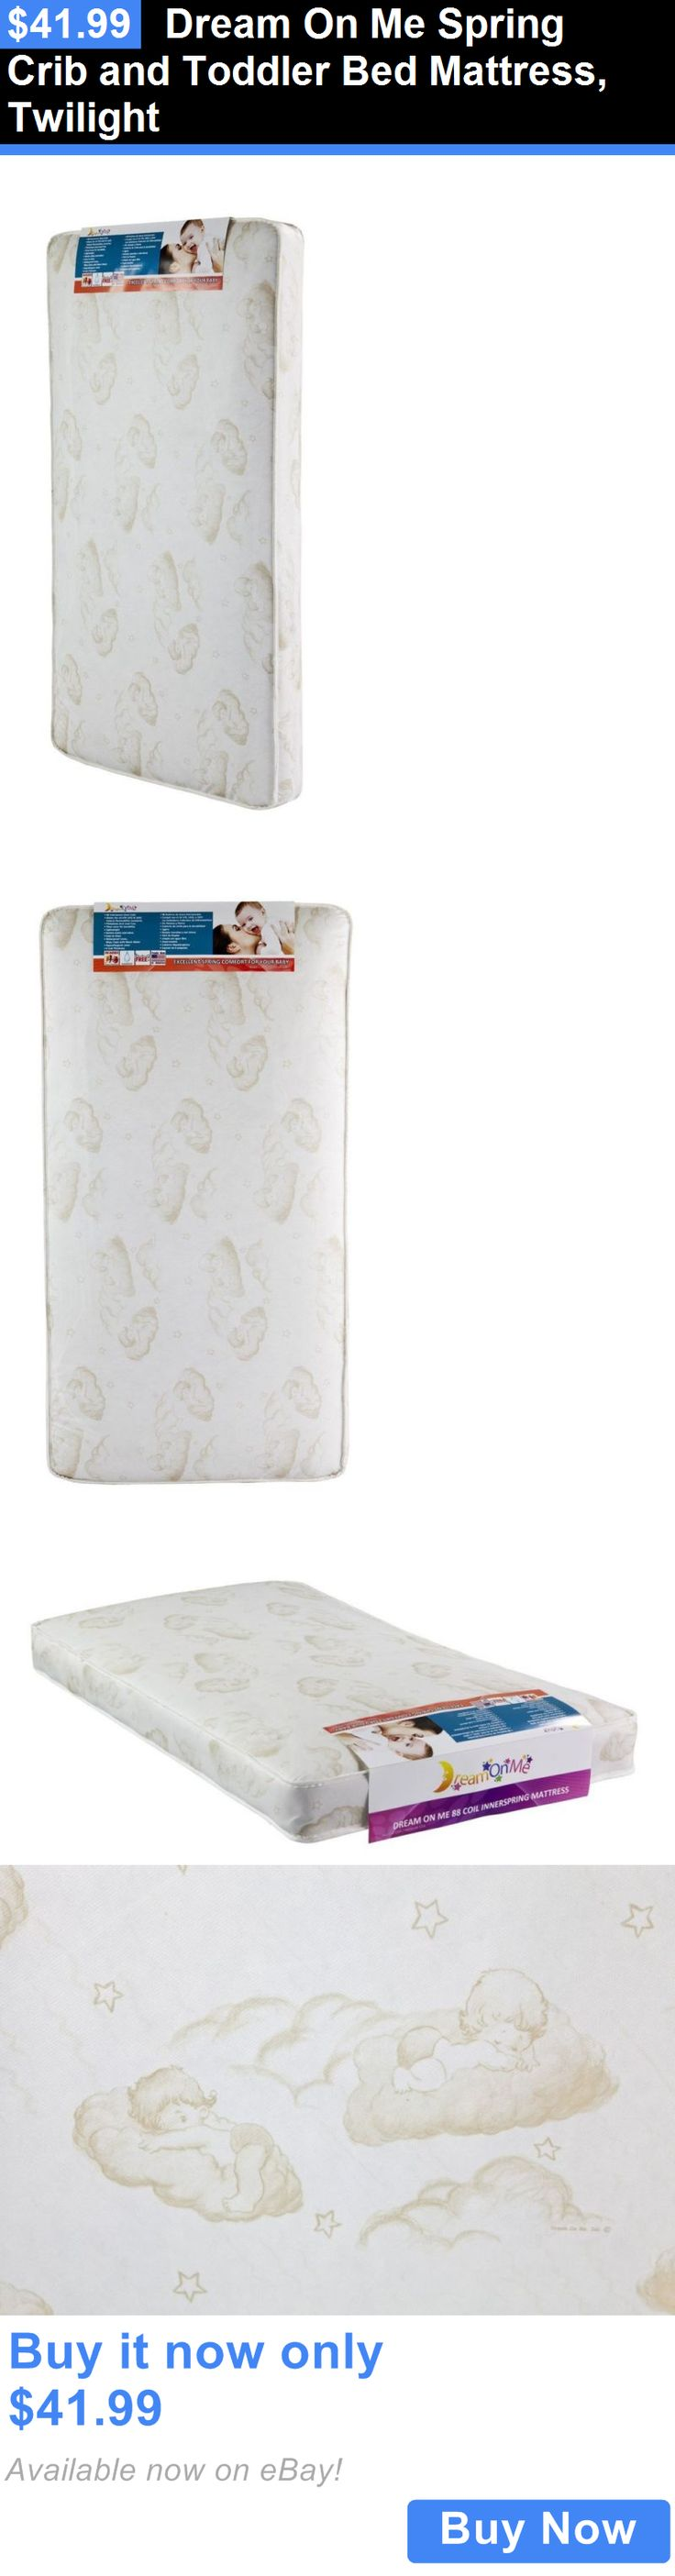 Baby Nursery: Dream On Me Spring Crib And Toddler Bed Mattress, Twilight BUY IT NOW ONLY: $41.99